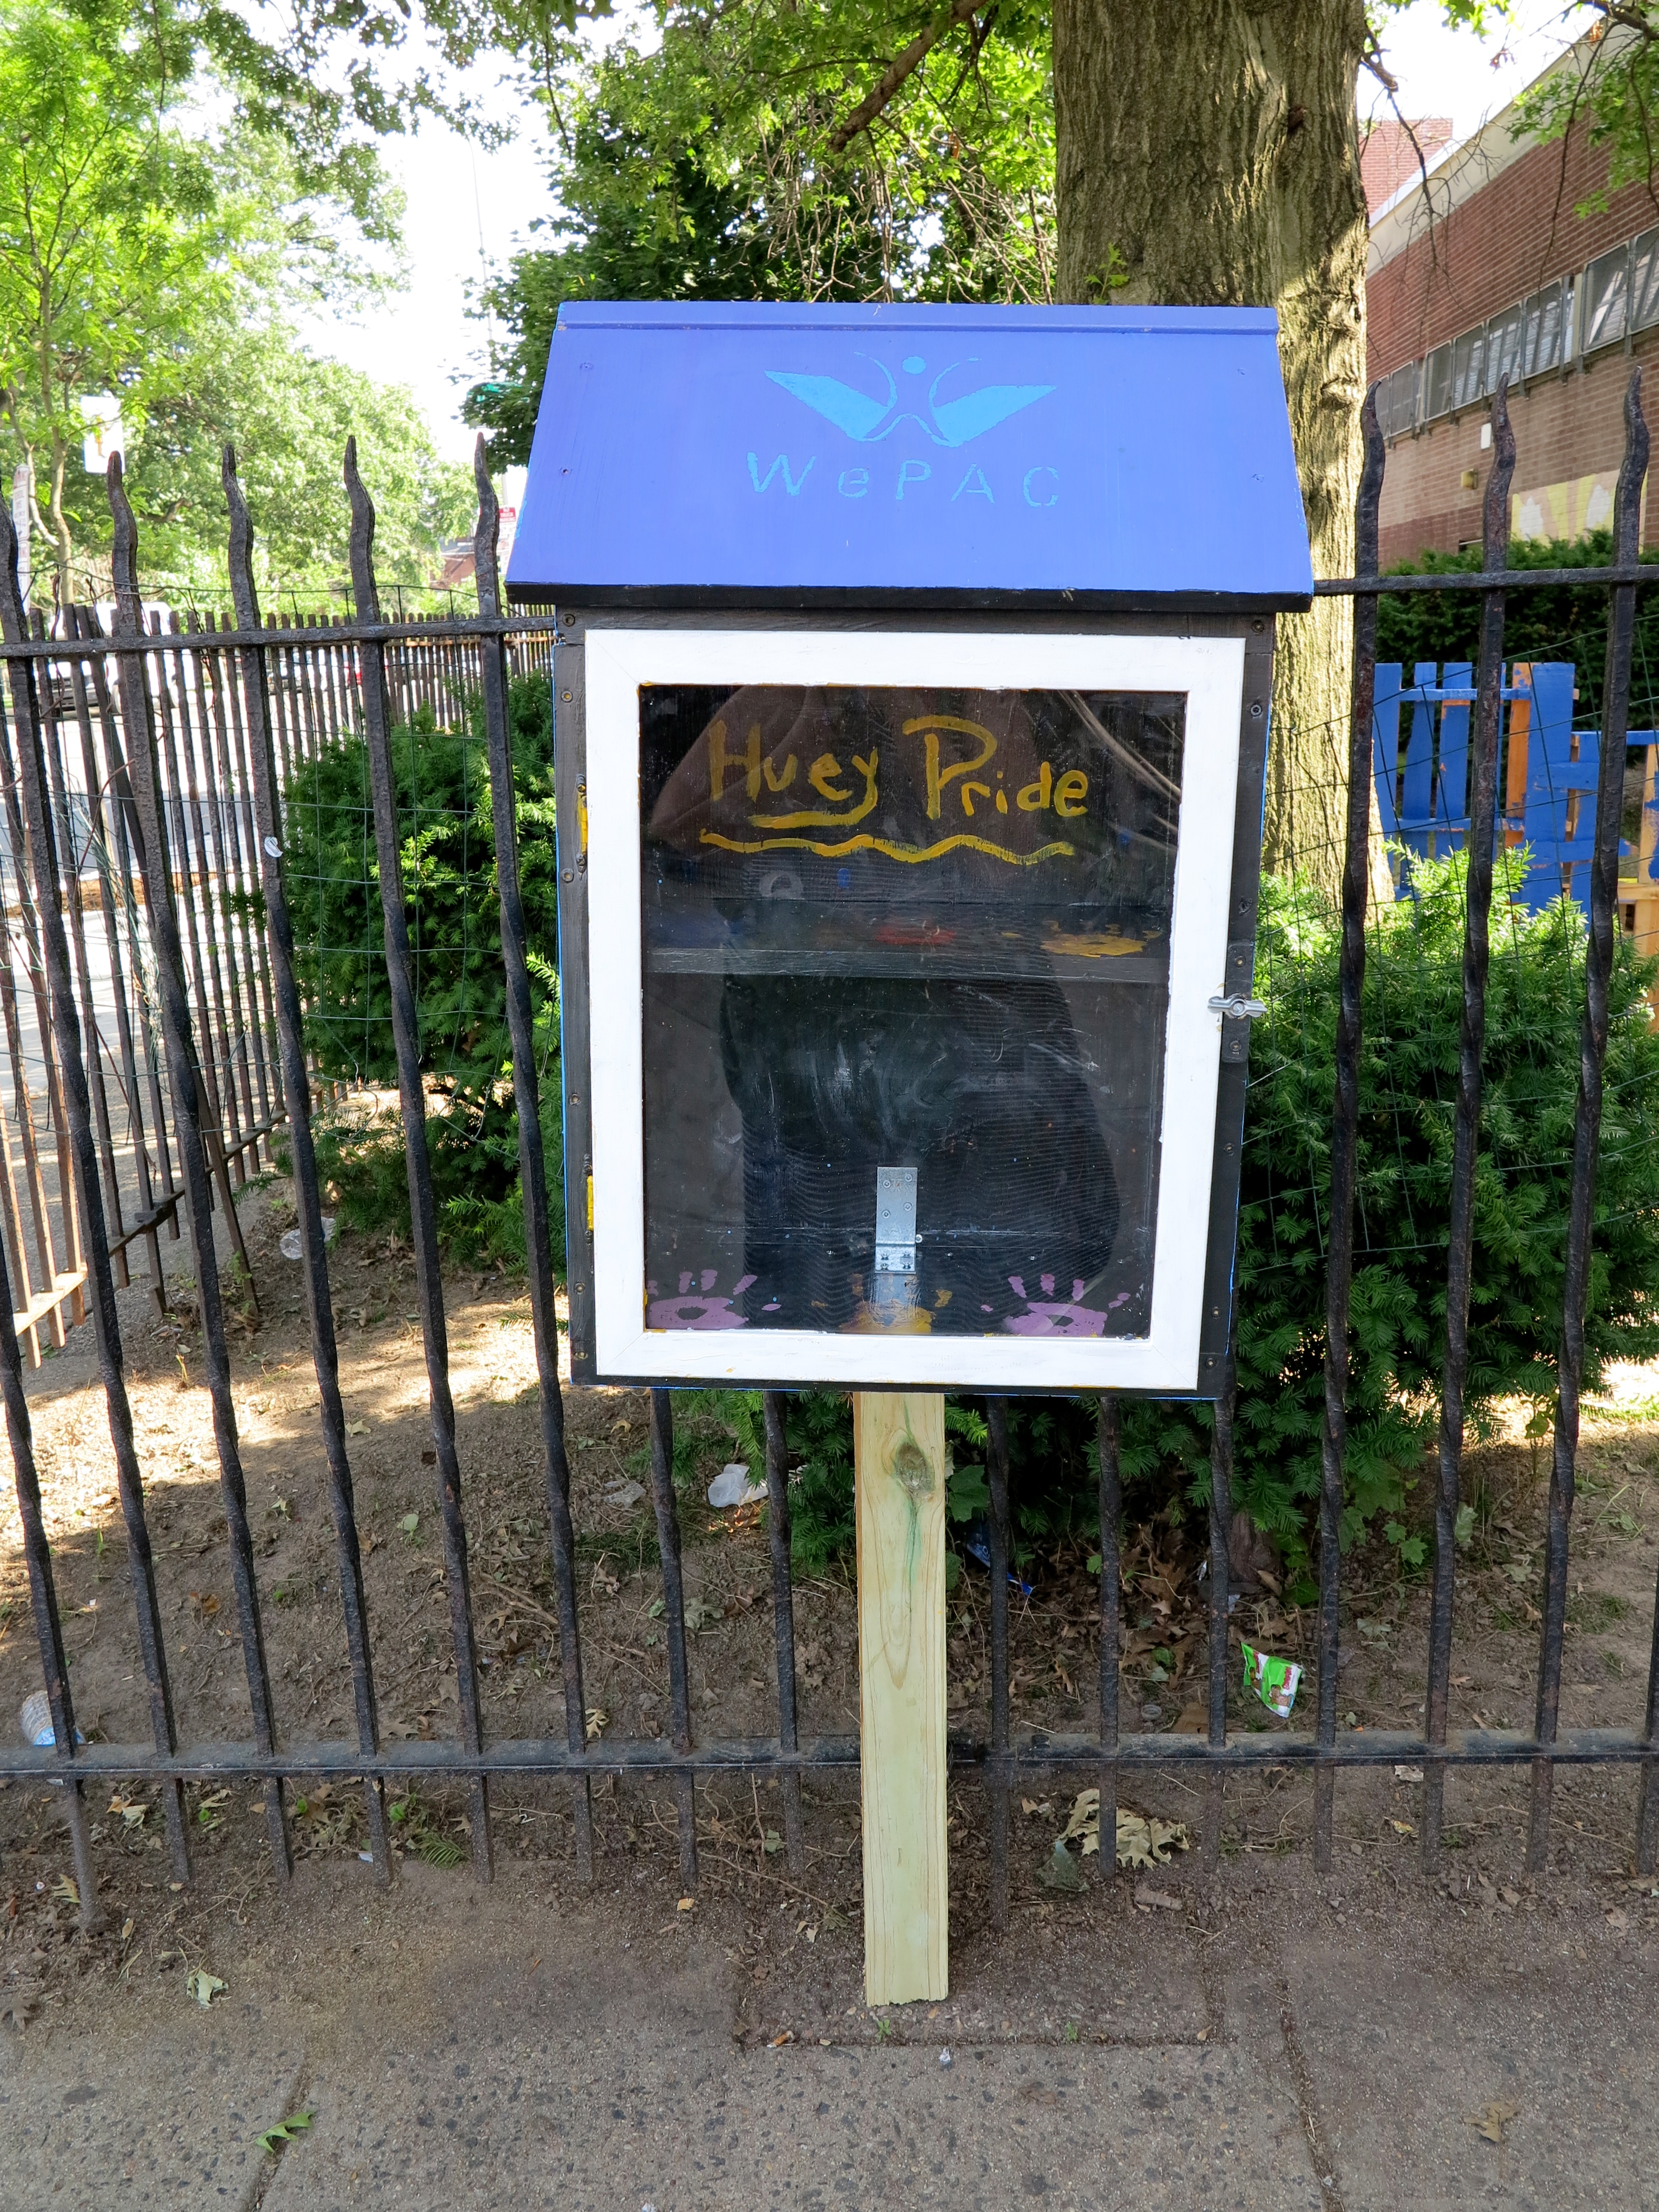 WePAC's mini library outside Huey Elementary